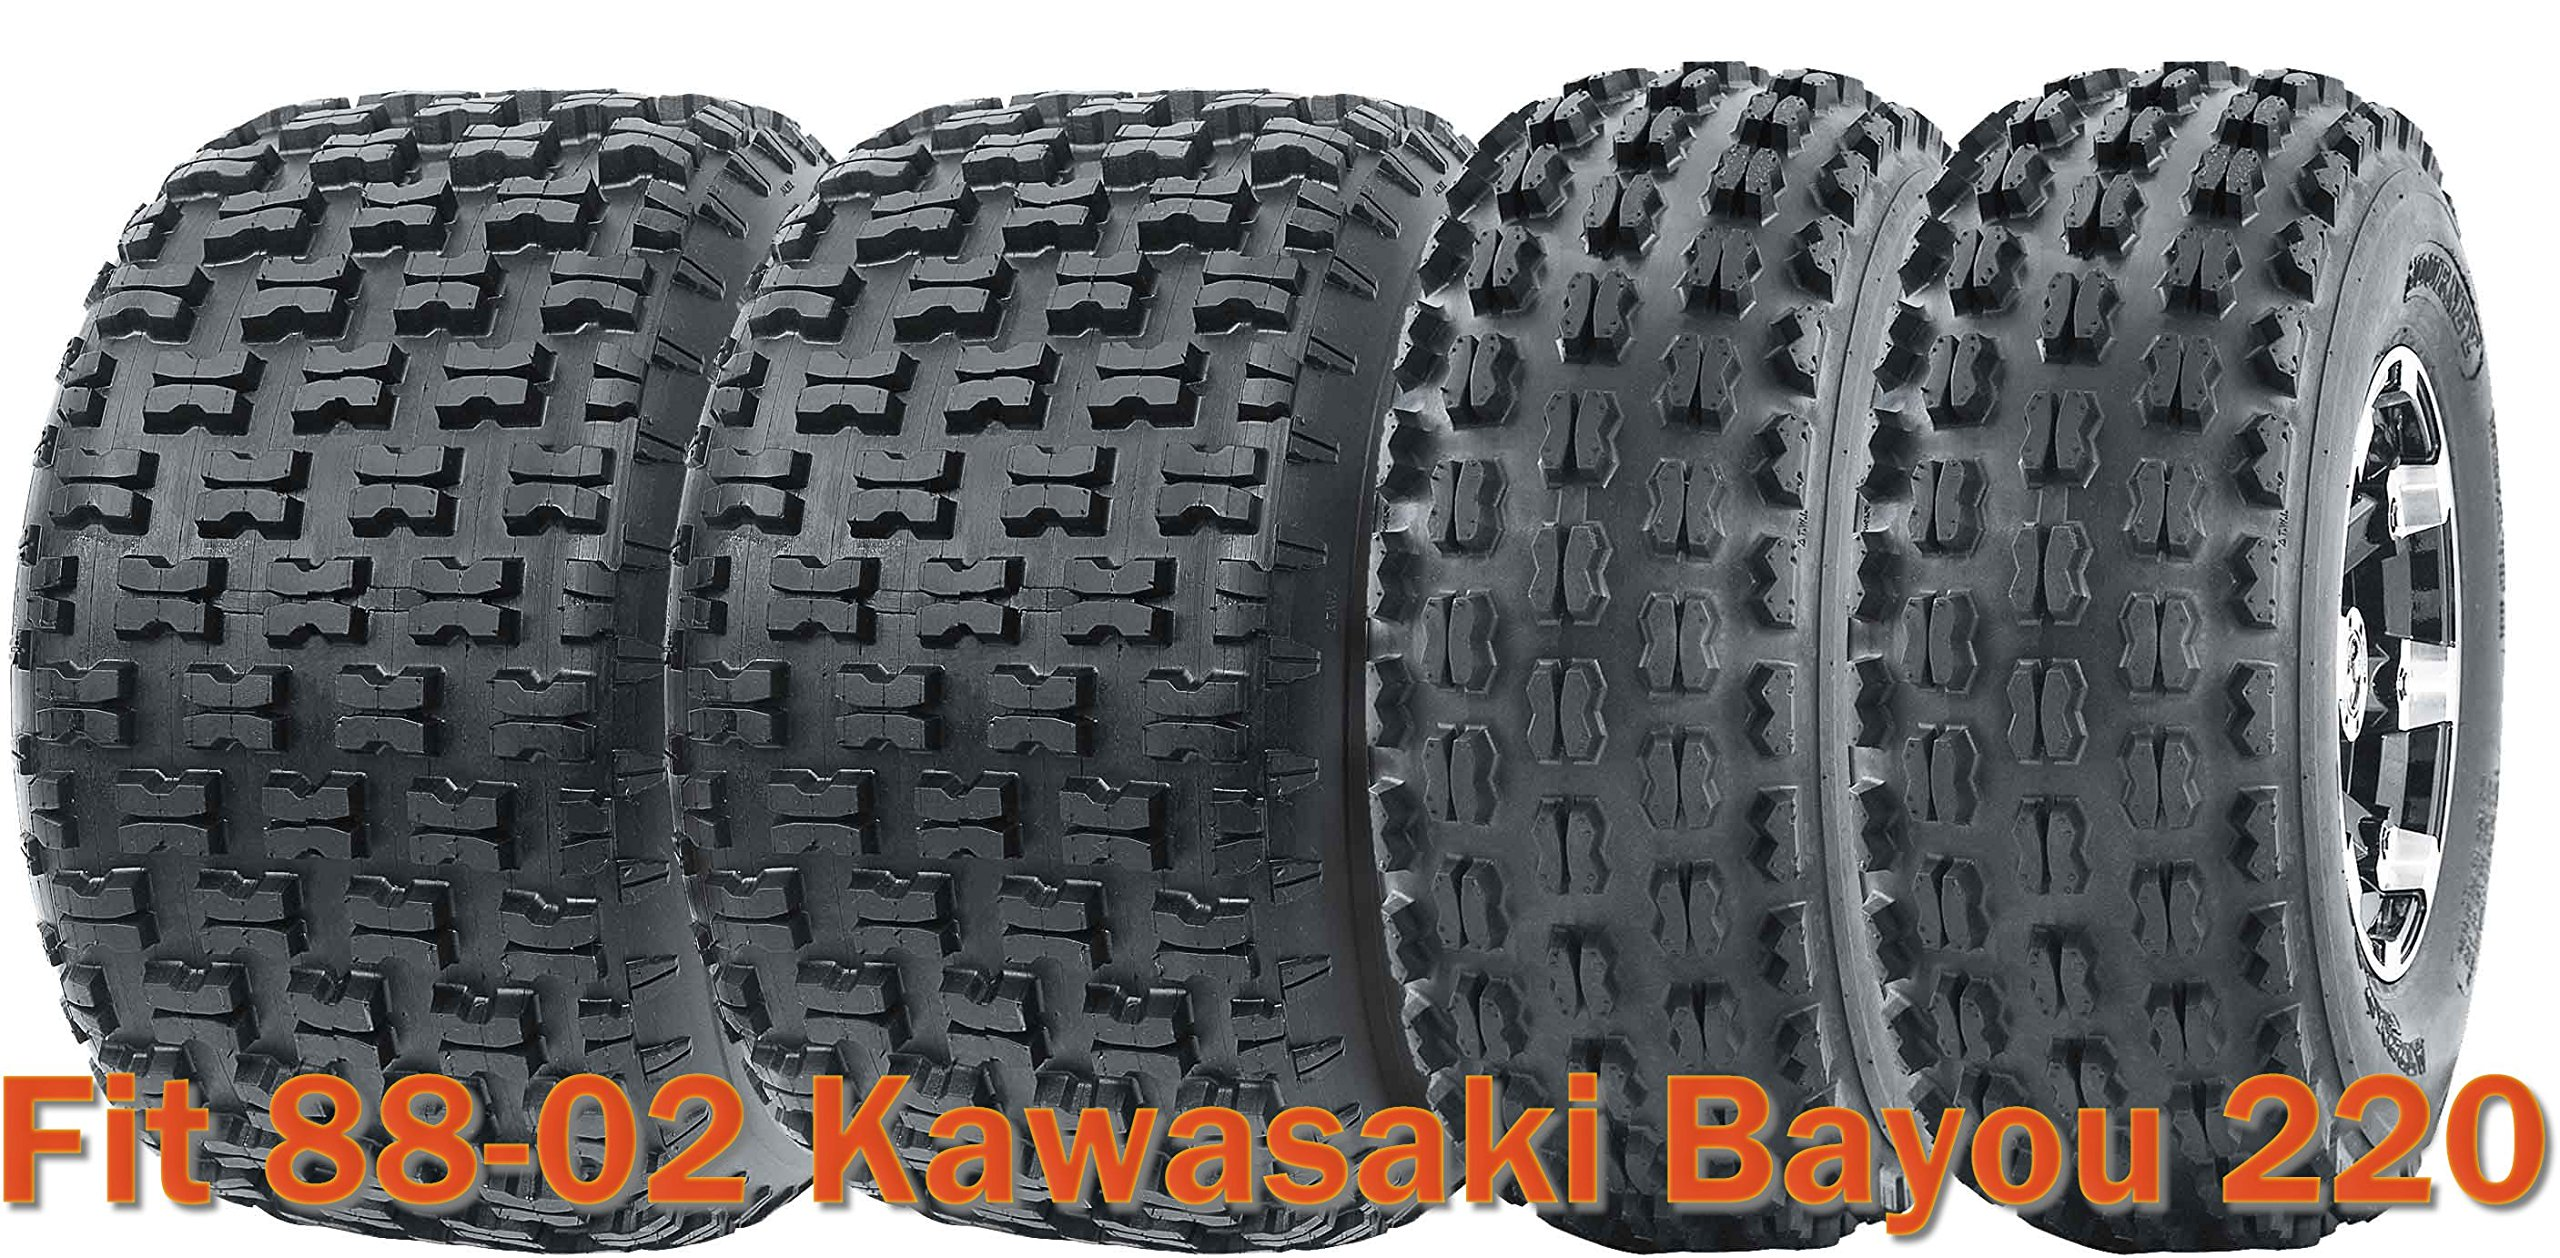 Full Set Sport ATV tires 21x8-9 & 22x10-10 for 88-02 Kawasaki Bayou 220